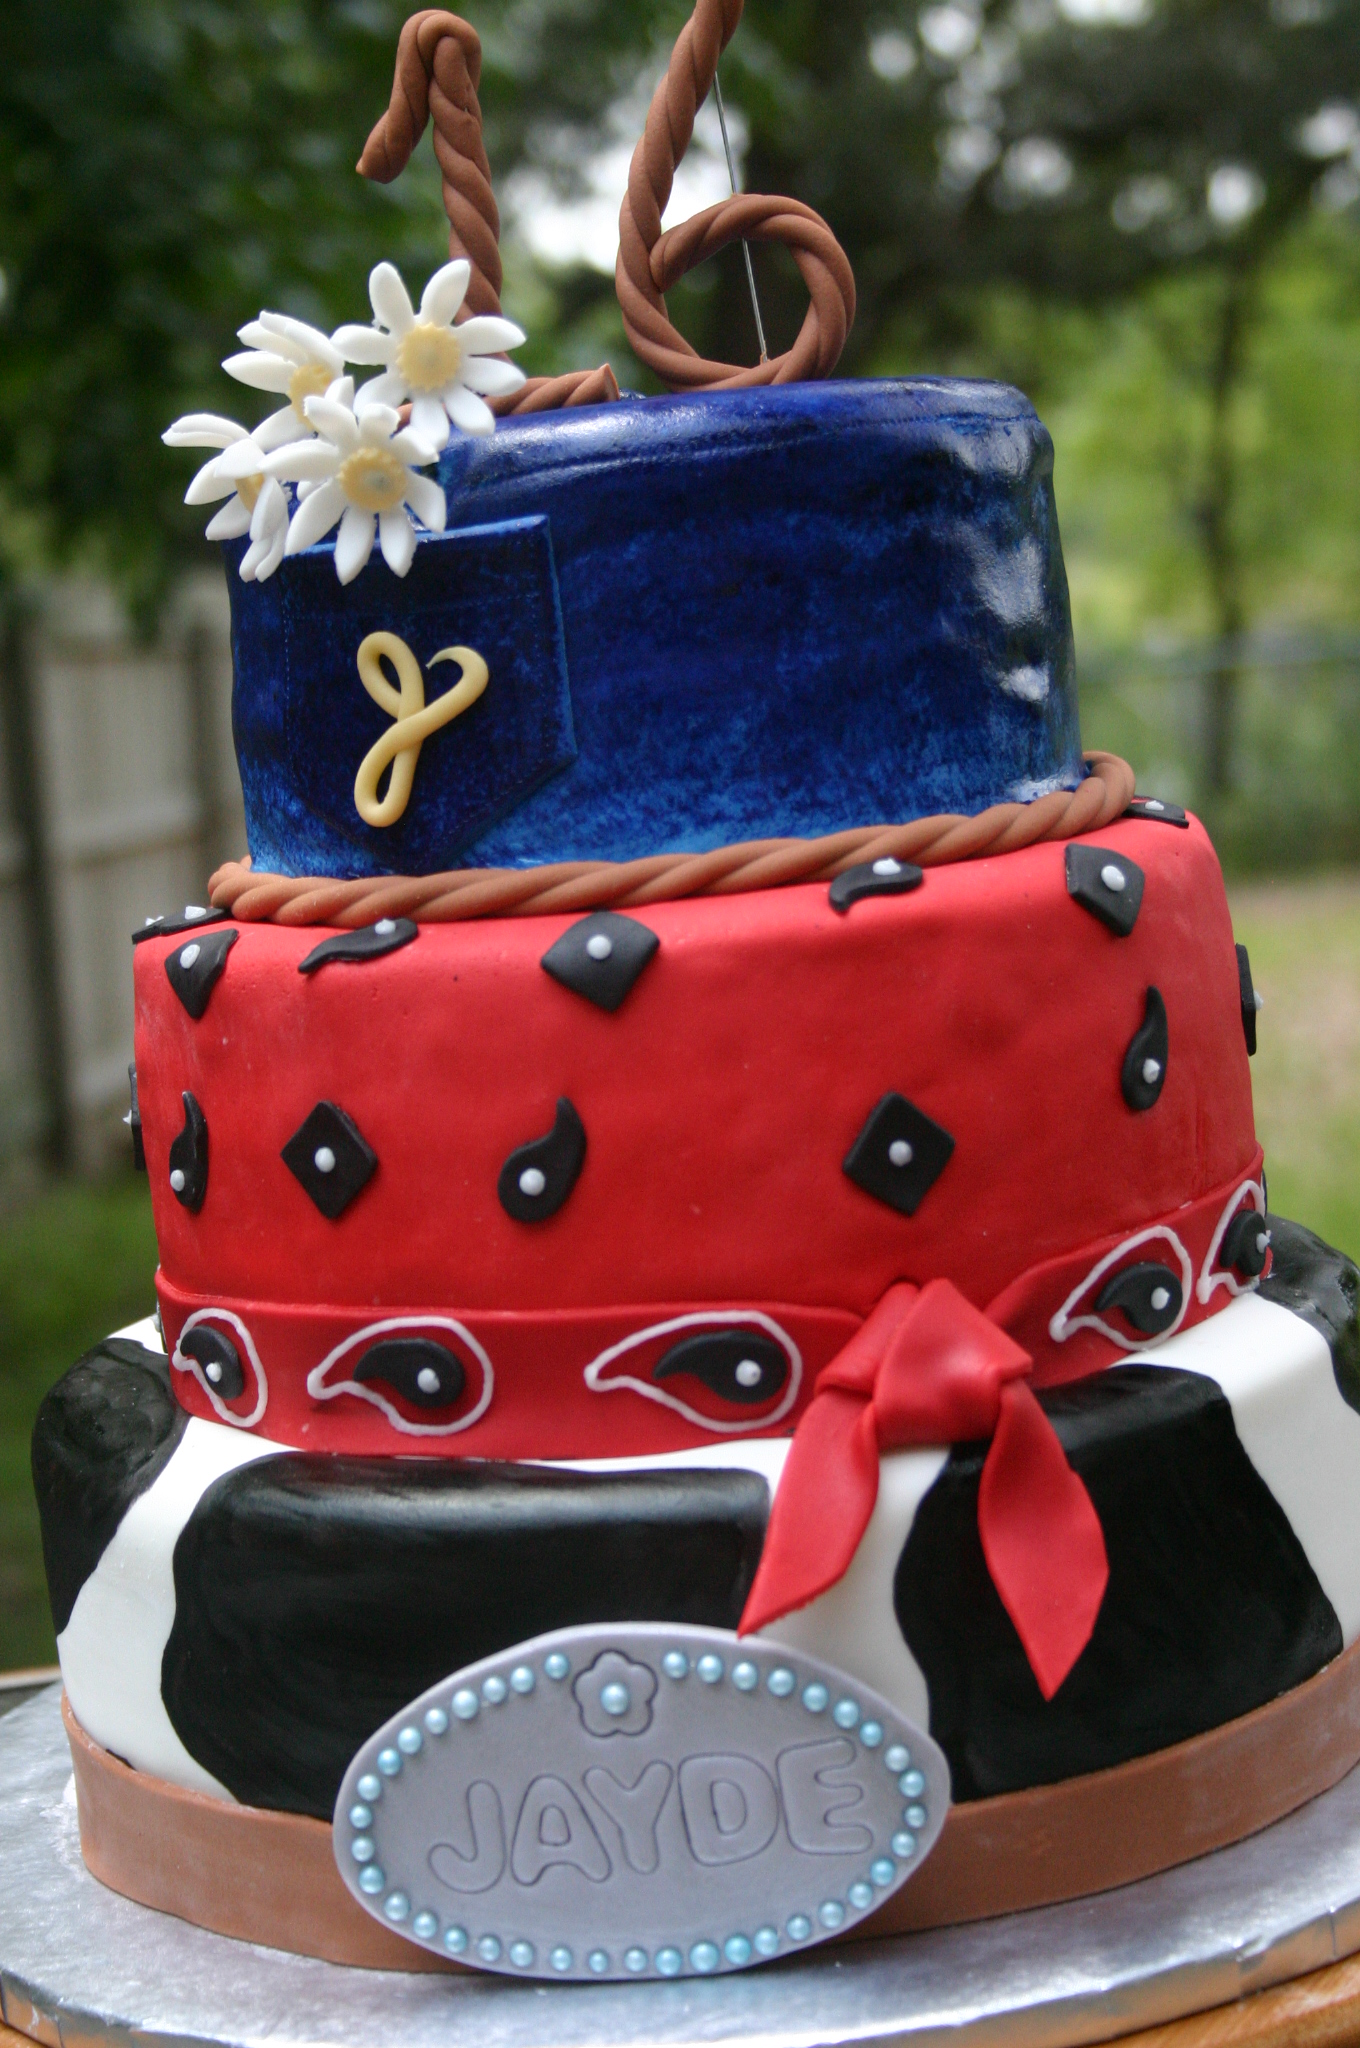 Excellent Cowgirl Western Sweet 16 Birthday Cake Lolos Cakes Sweets Funny Birthday Cards Online Barepcheapnameinfo